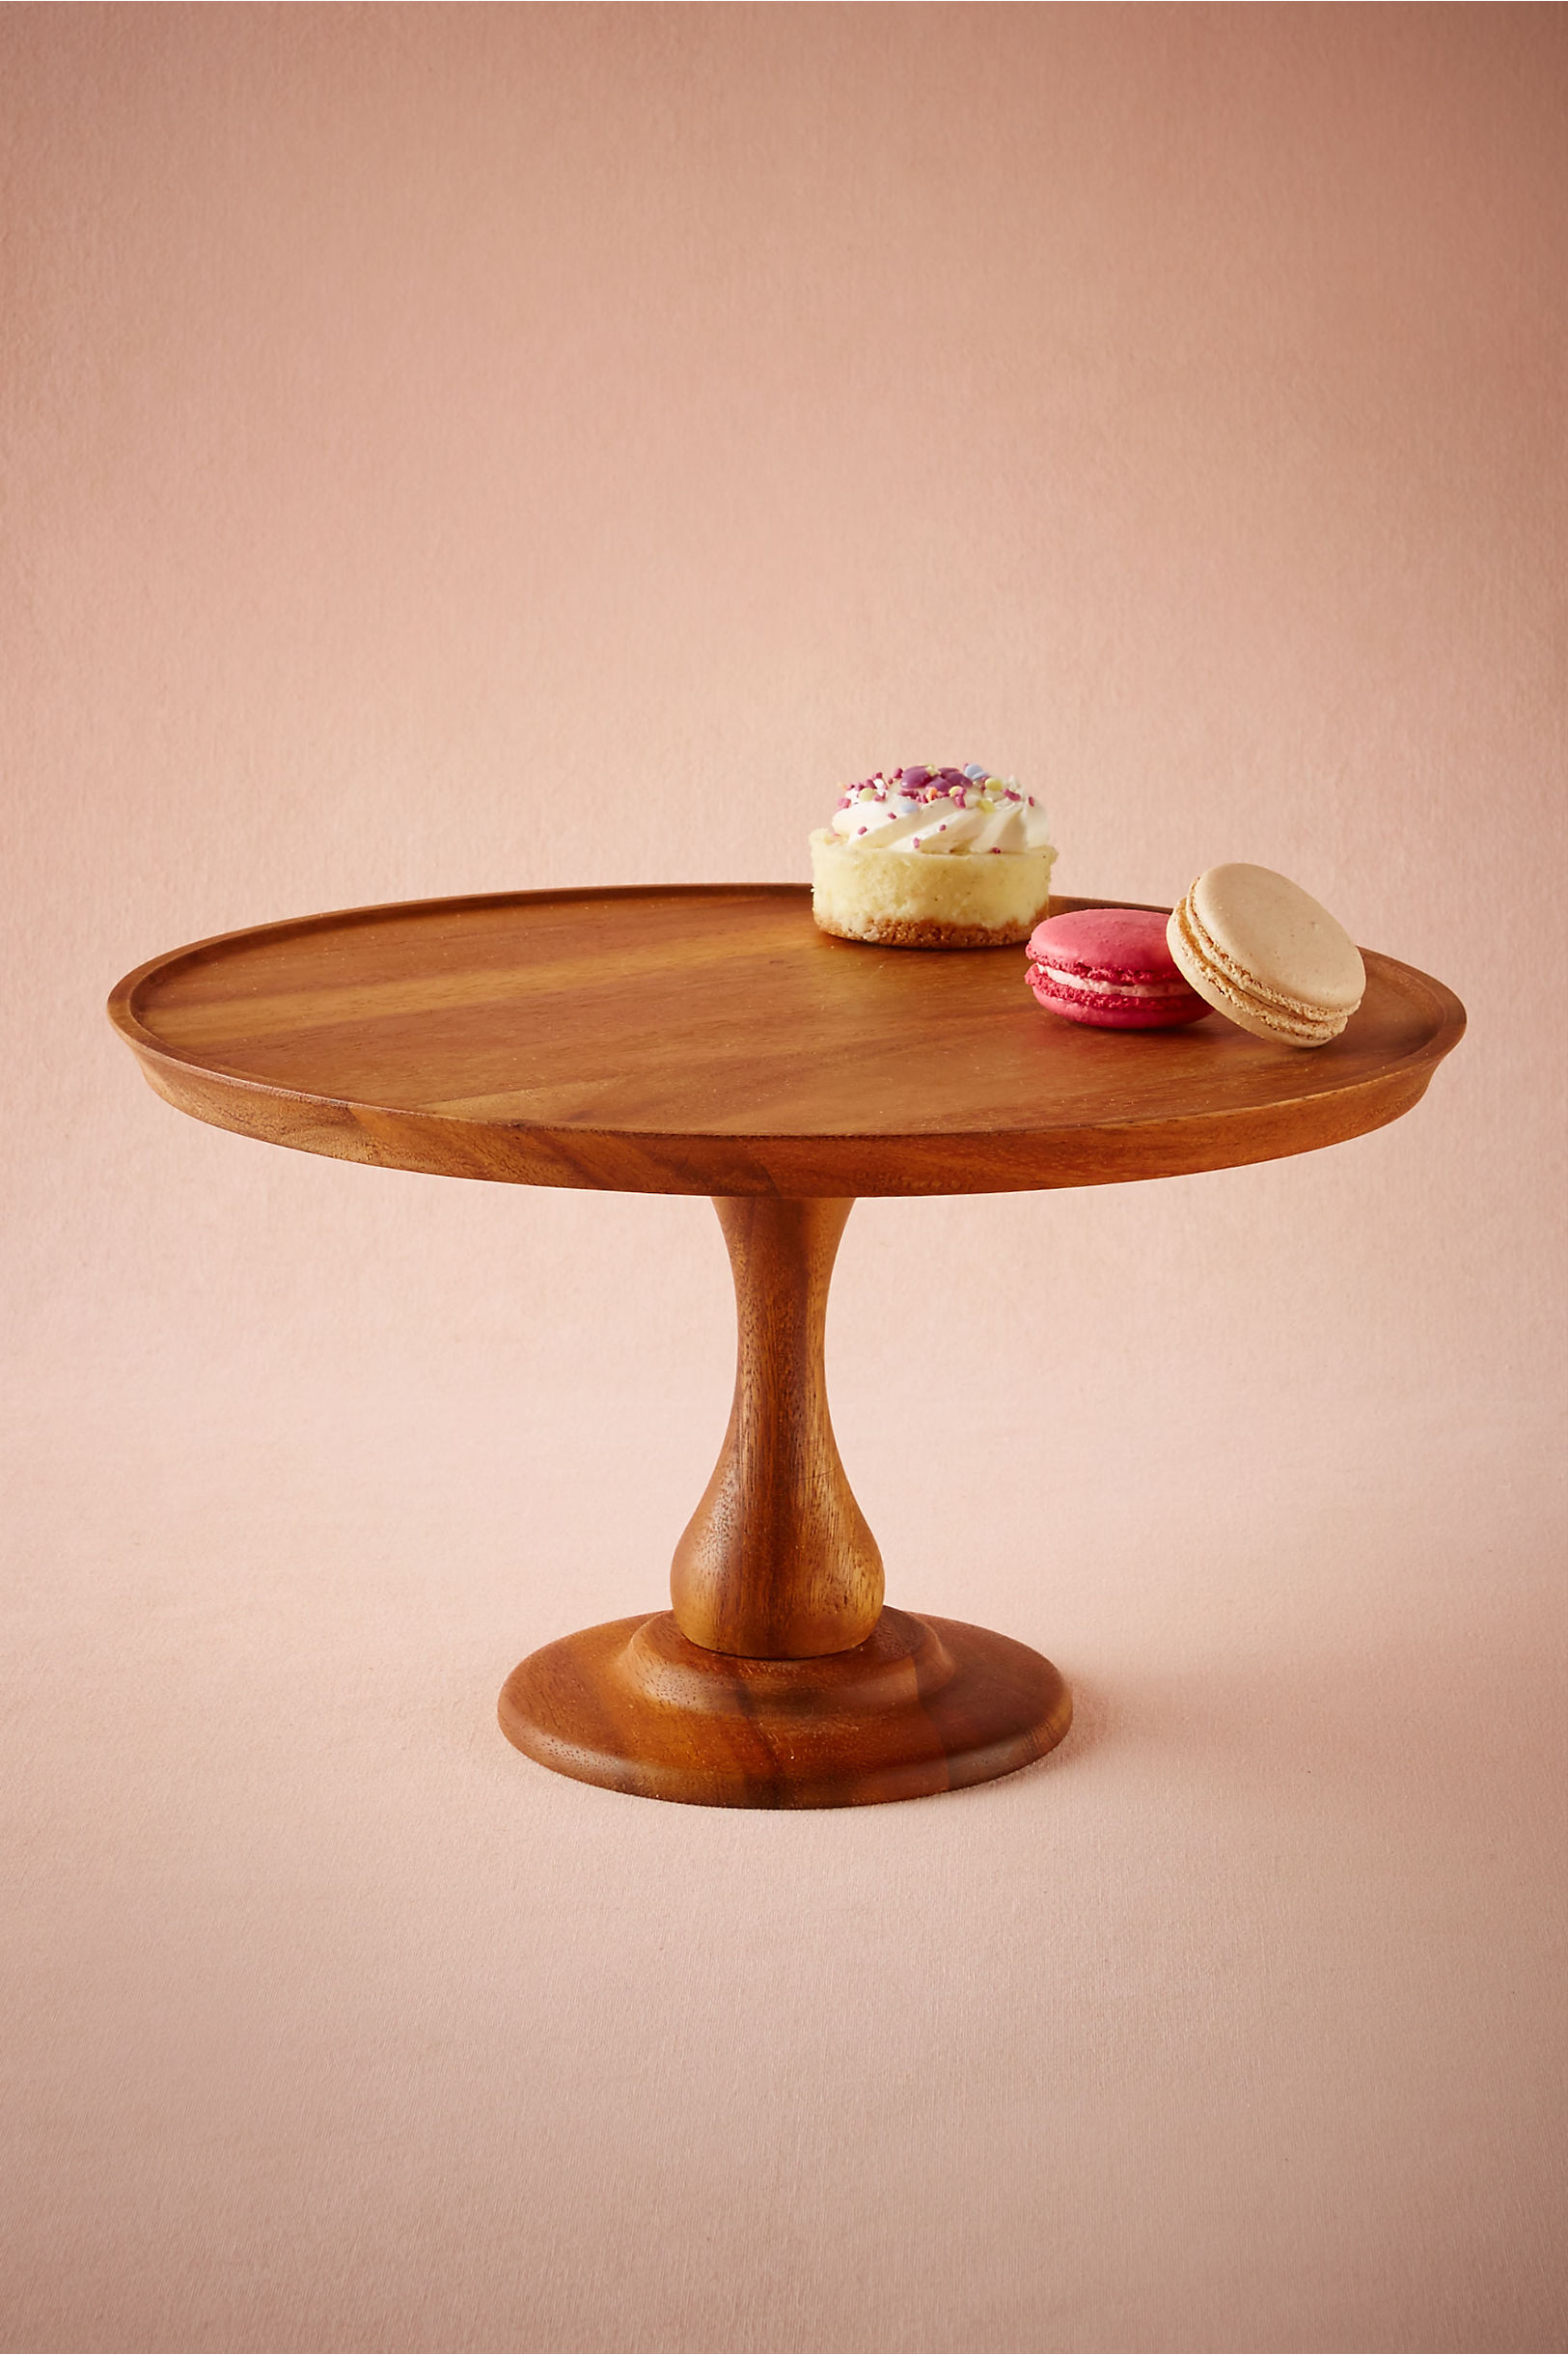 Walden Cake Stand in Décor Cake Accessories at BHLDN